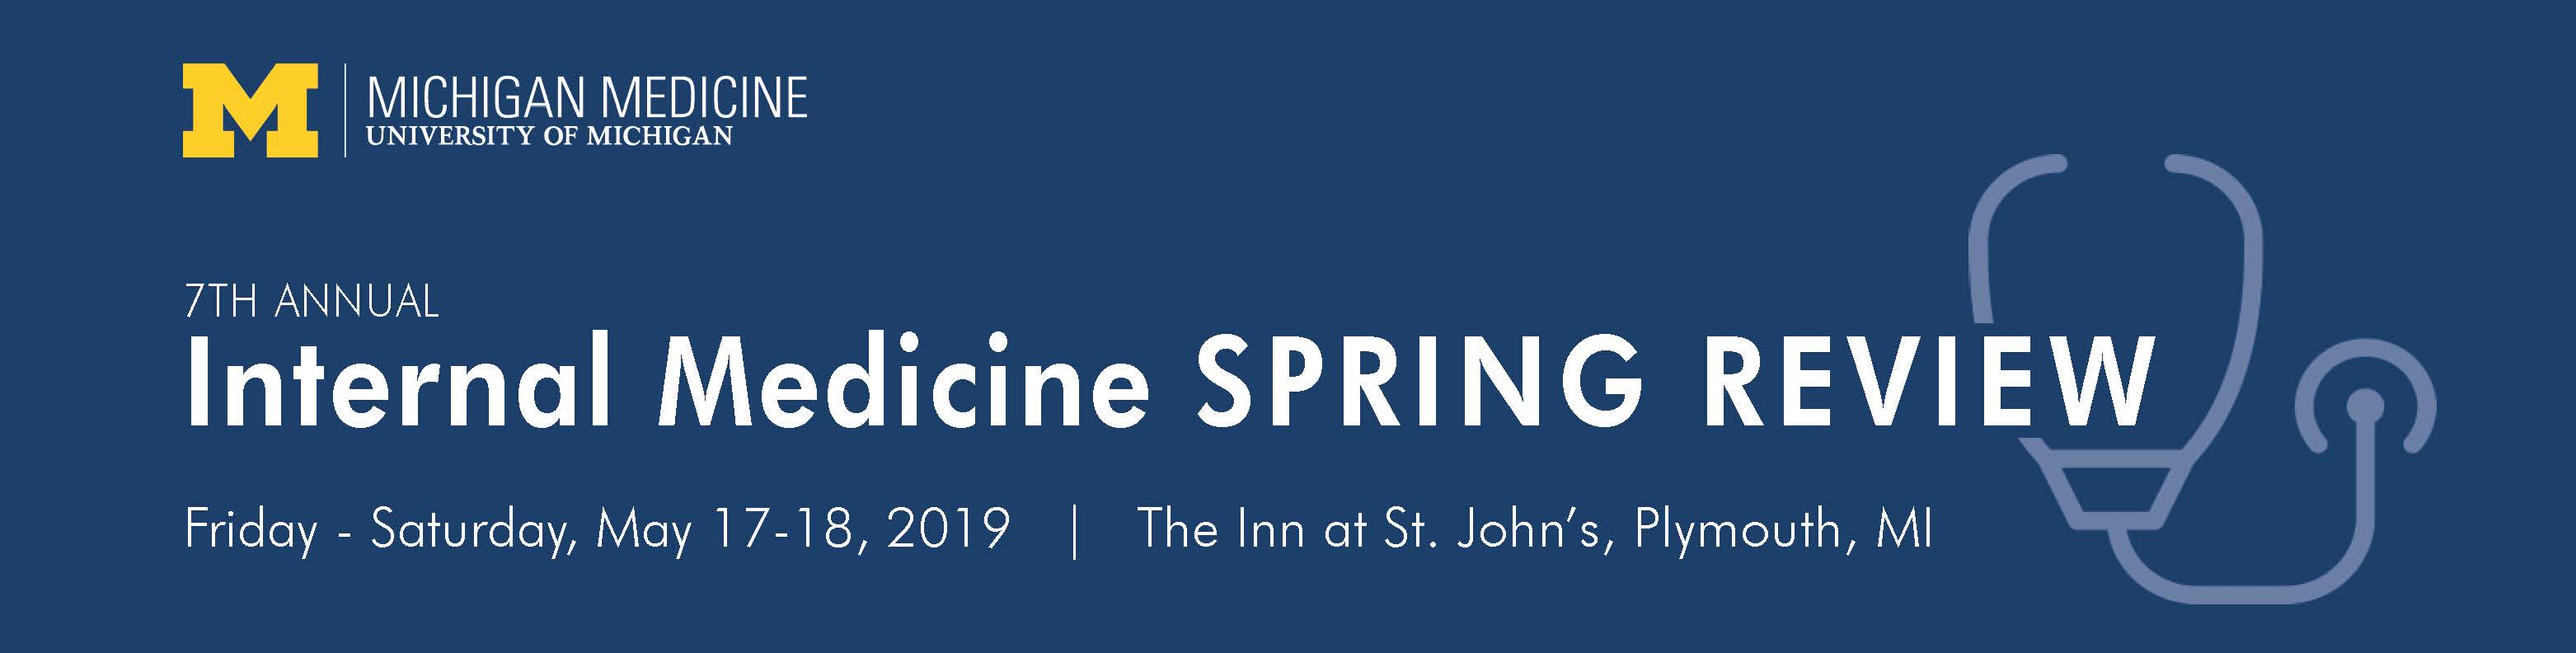 7th Annual Internal Medicine Spring Review